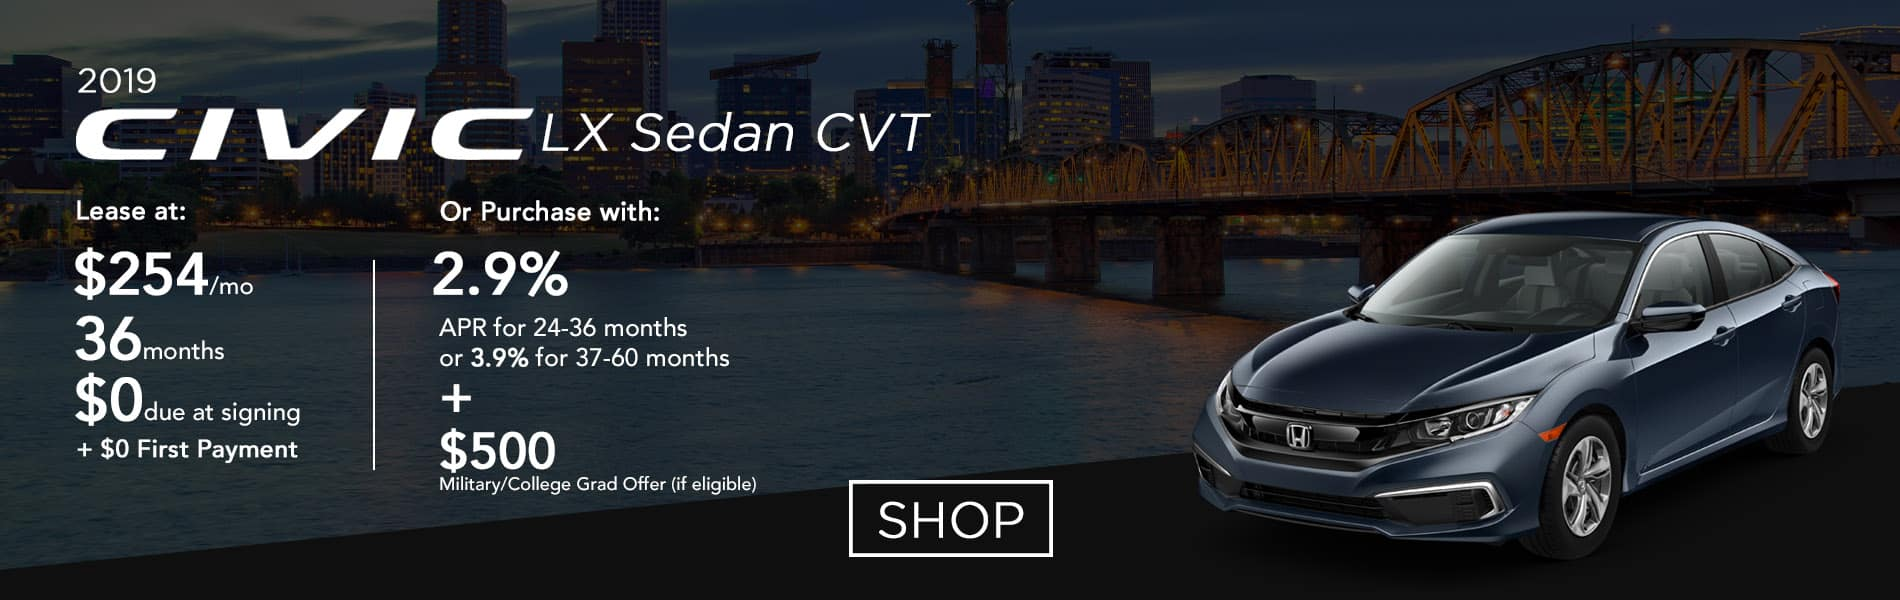 Lease a 2019 Civic LX Sedan CVT for $254 per month or purchase with 2.9% APR up to 36 months